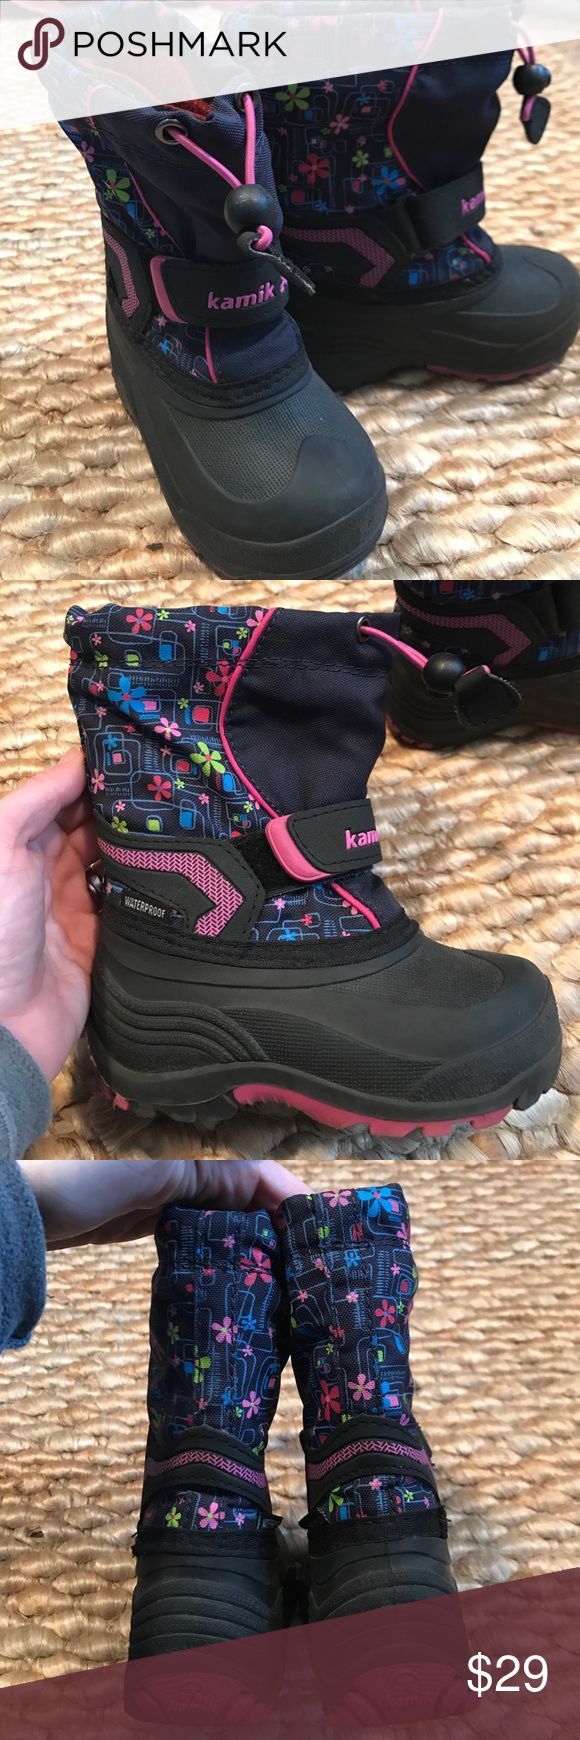 EUC Girls flower Kamik winter boots These waterproof boots are the best winter boots to keep those little feet warm. These pair are black, navy and pink with a multi colored floral pattern on the shaft. The best winter book for kiddos. The style is called Sleet 2 for reference. Kamik Shoes Rain & Snow Boots